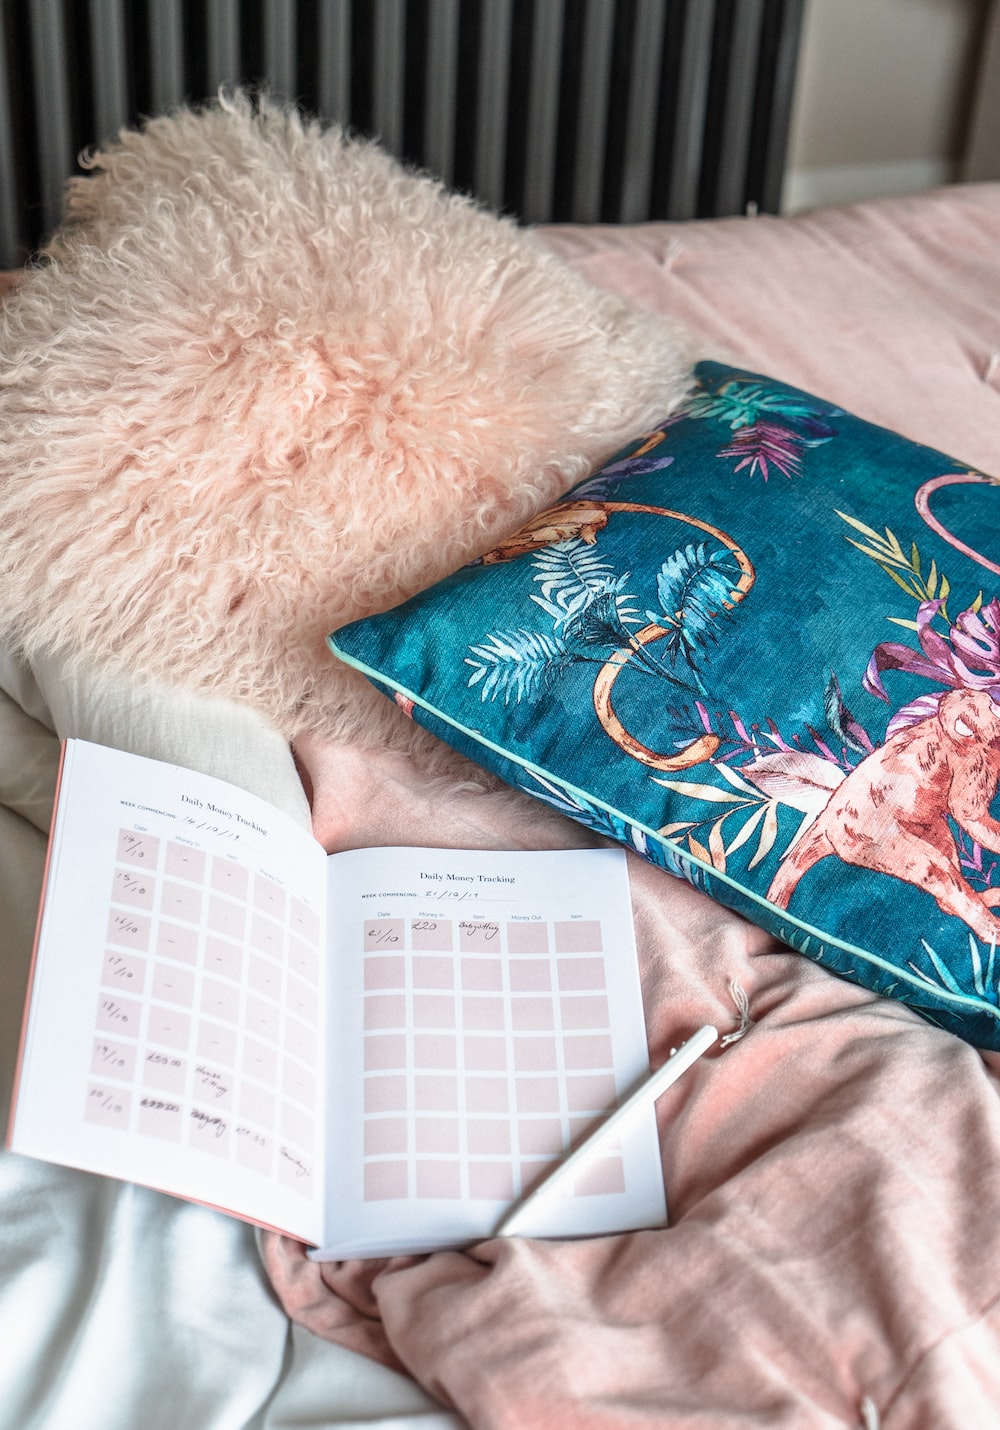 pen on top of a book beside throw pillows in bed